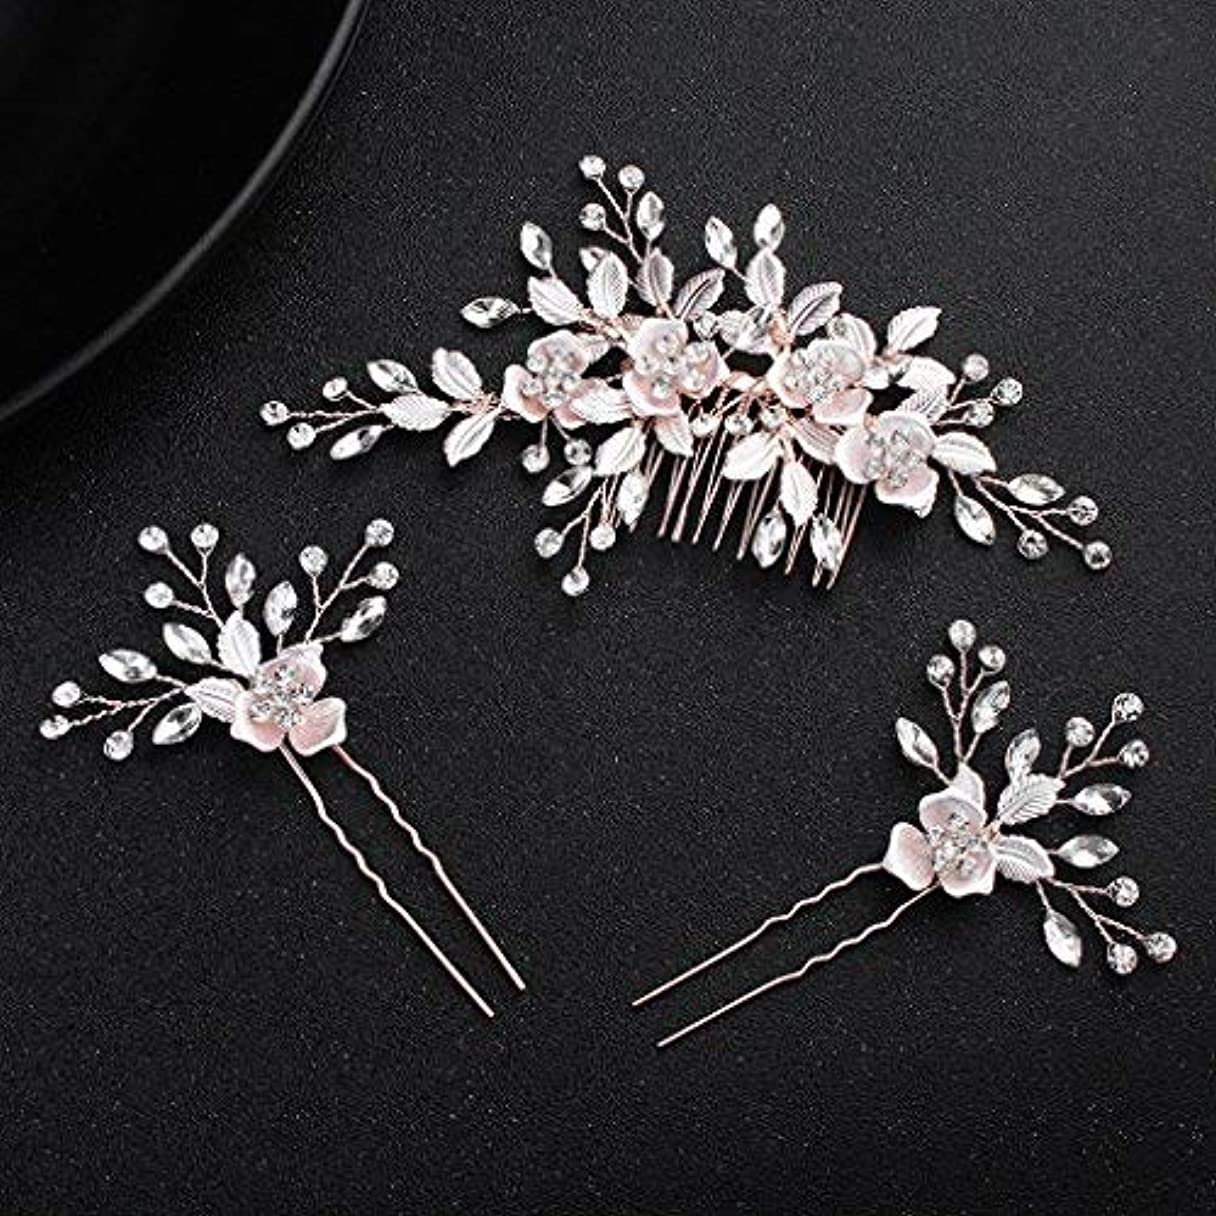 中絶批評地理obqoo Crystal Flowers Style Colorful Leaves Metal Bridal Hair Comb with 2 pcs Pins Rose Gold [並行輸入品]